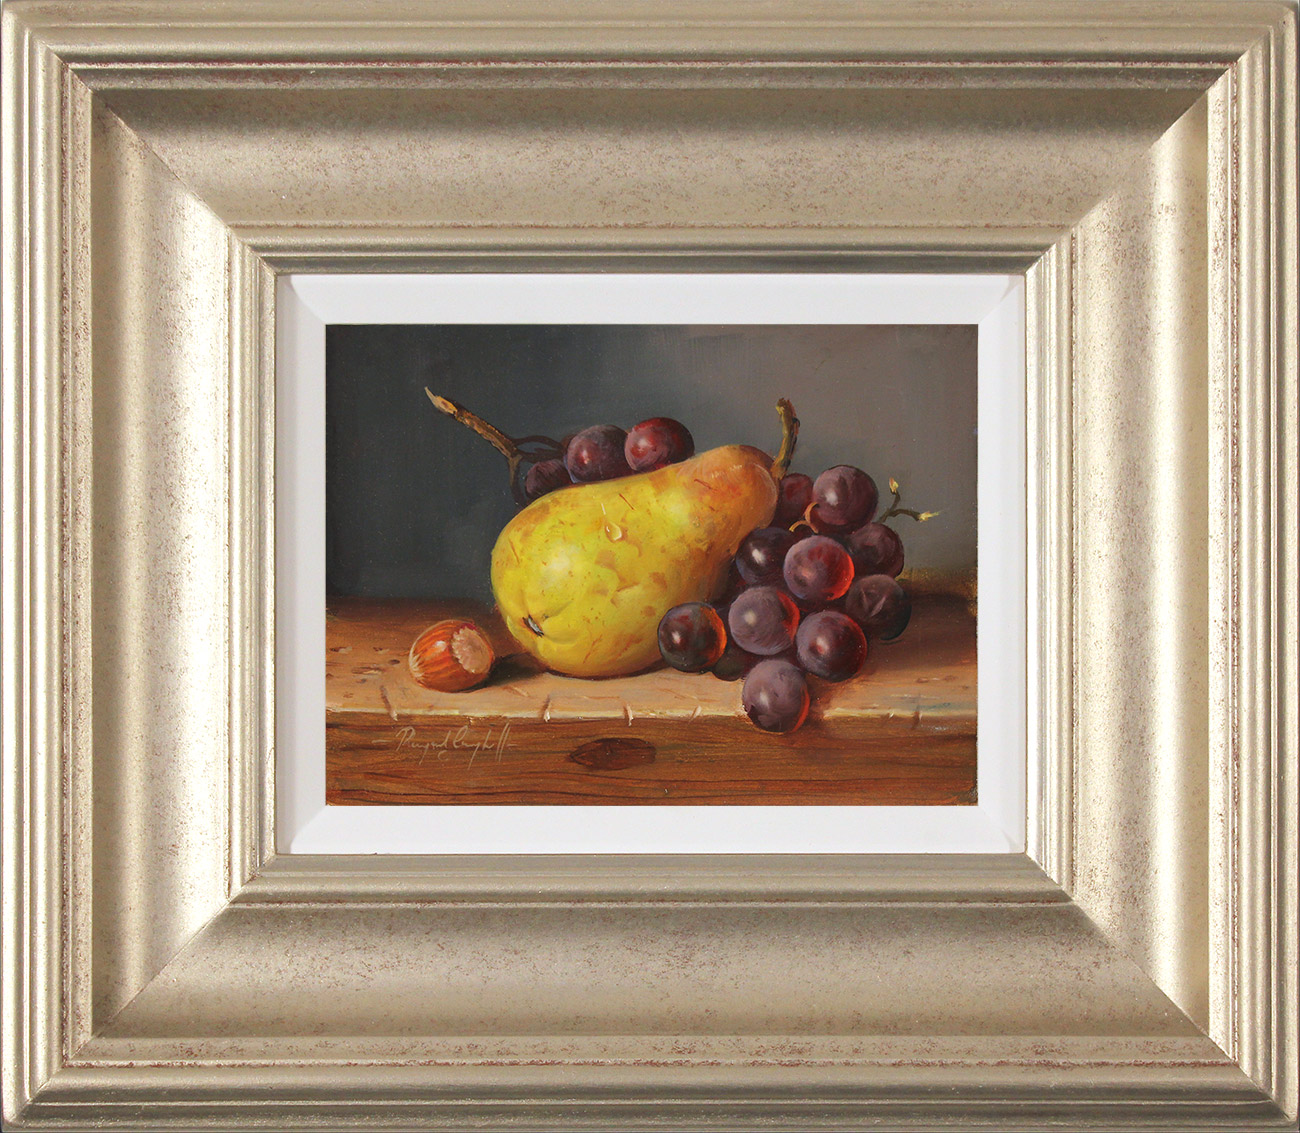 Raymond Campbell, Original oil painting on panel, Pear, Walnut and Grapes Click to enlarge